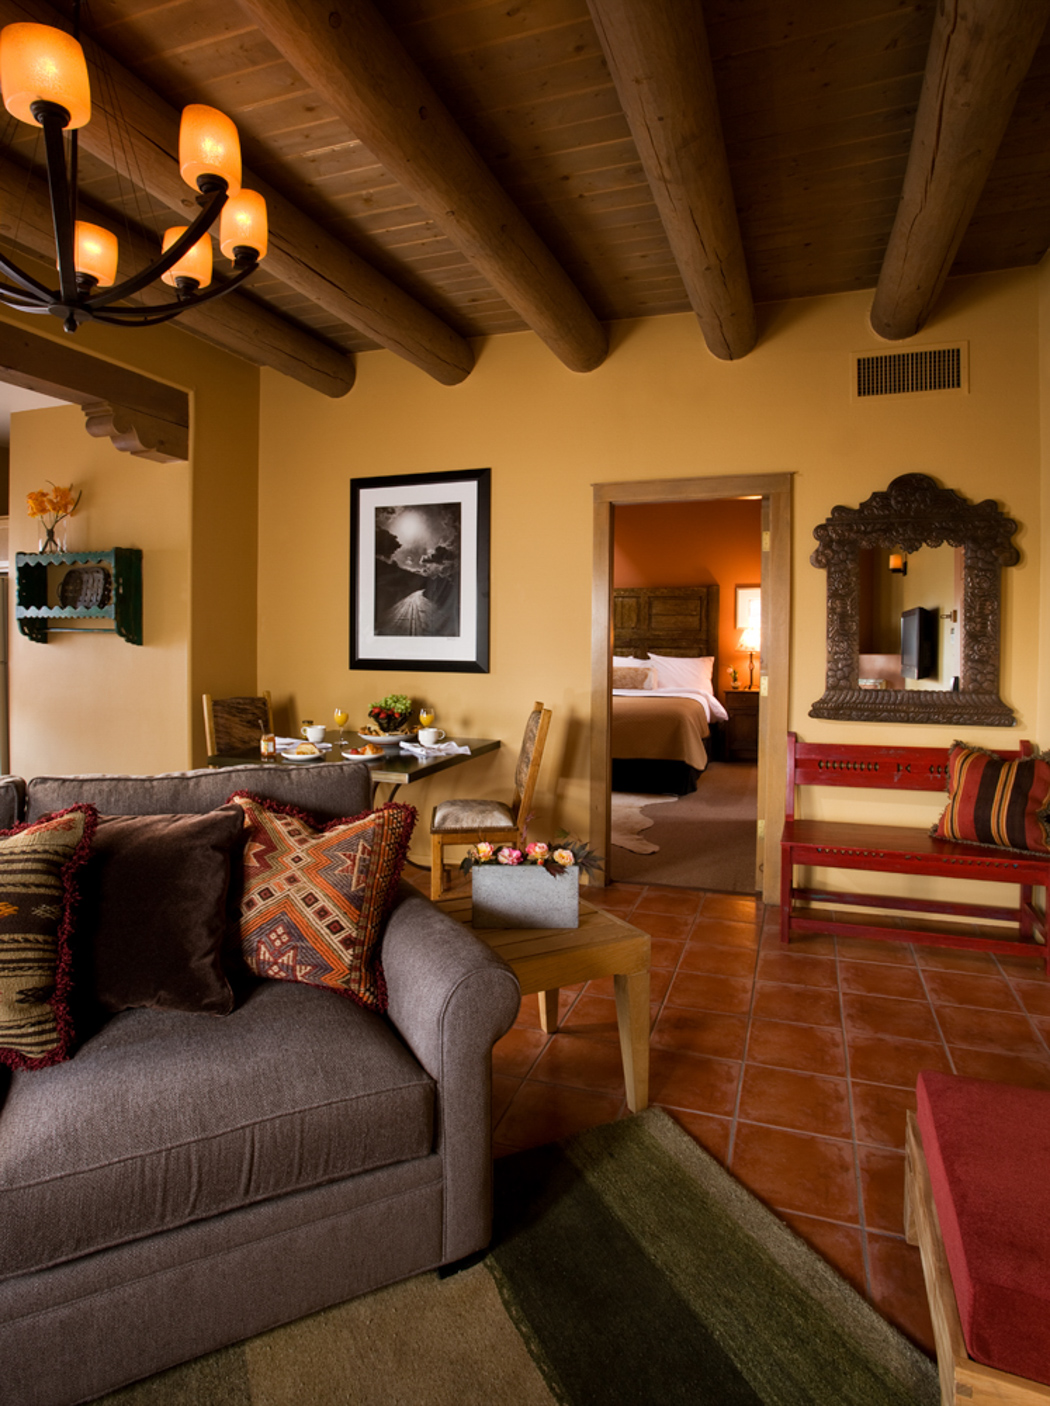 Rooms Historic Hotel In Santa Fe Las Palomas Hotel